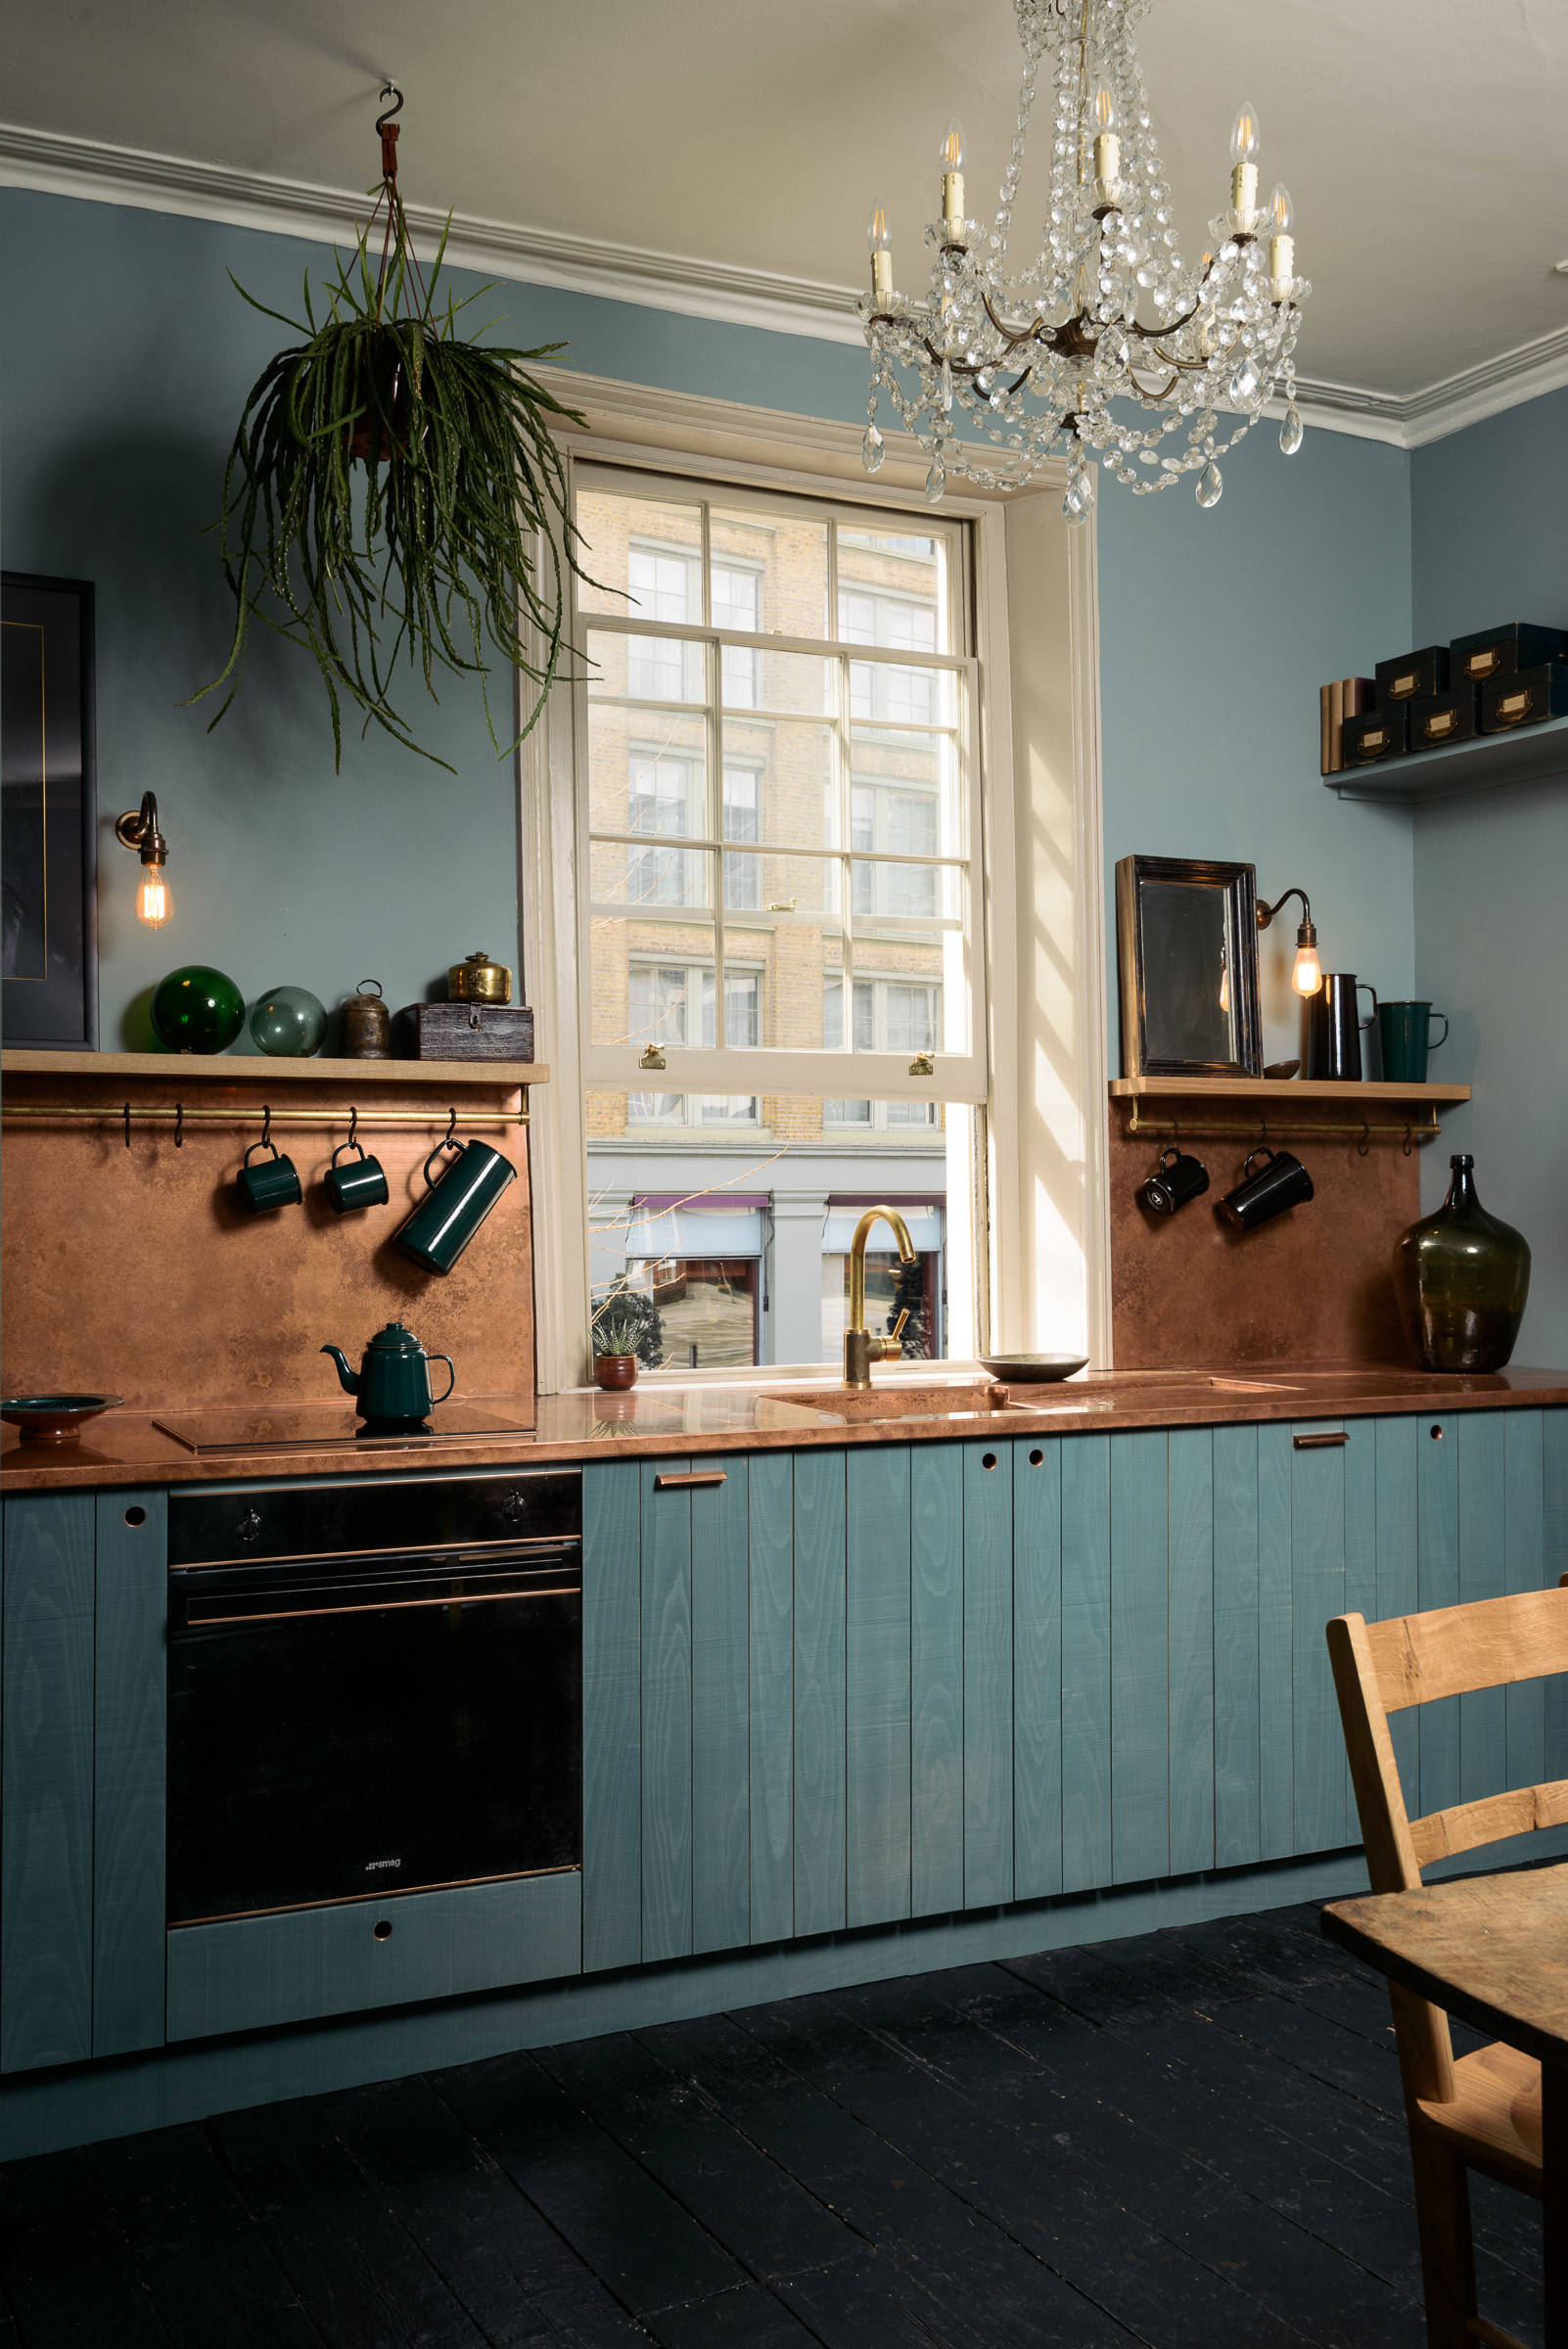 75 Beautiful Kitchen With Copper Countertops Pictures Ideas January 2021 Houzz